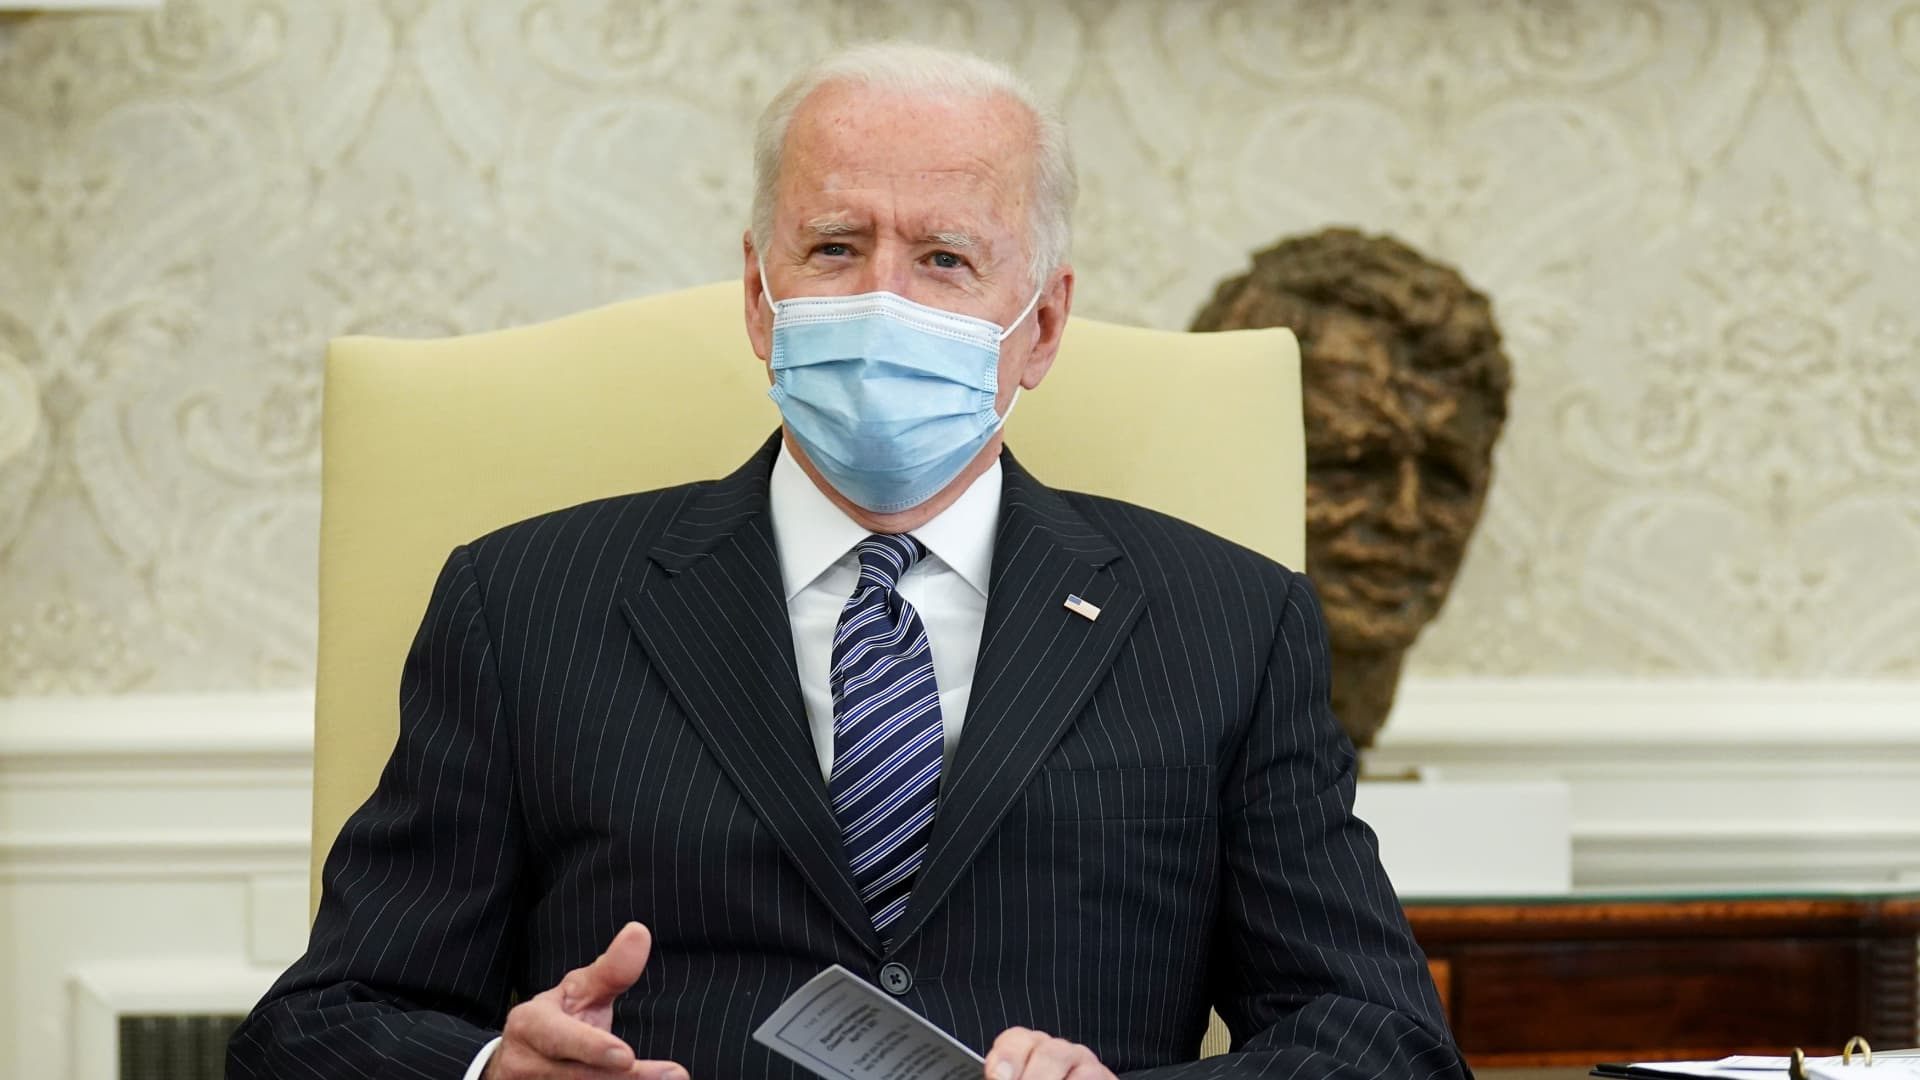 U.S. President Joe Biden holds a bi-partisan meeting on the American Jobs Plan at the White House in Washington, U.S., April 19, 2021.